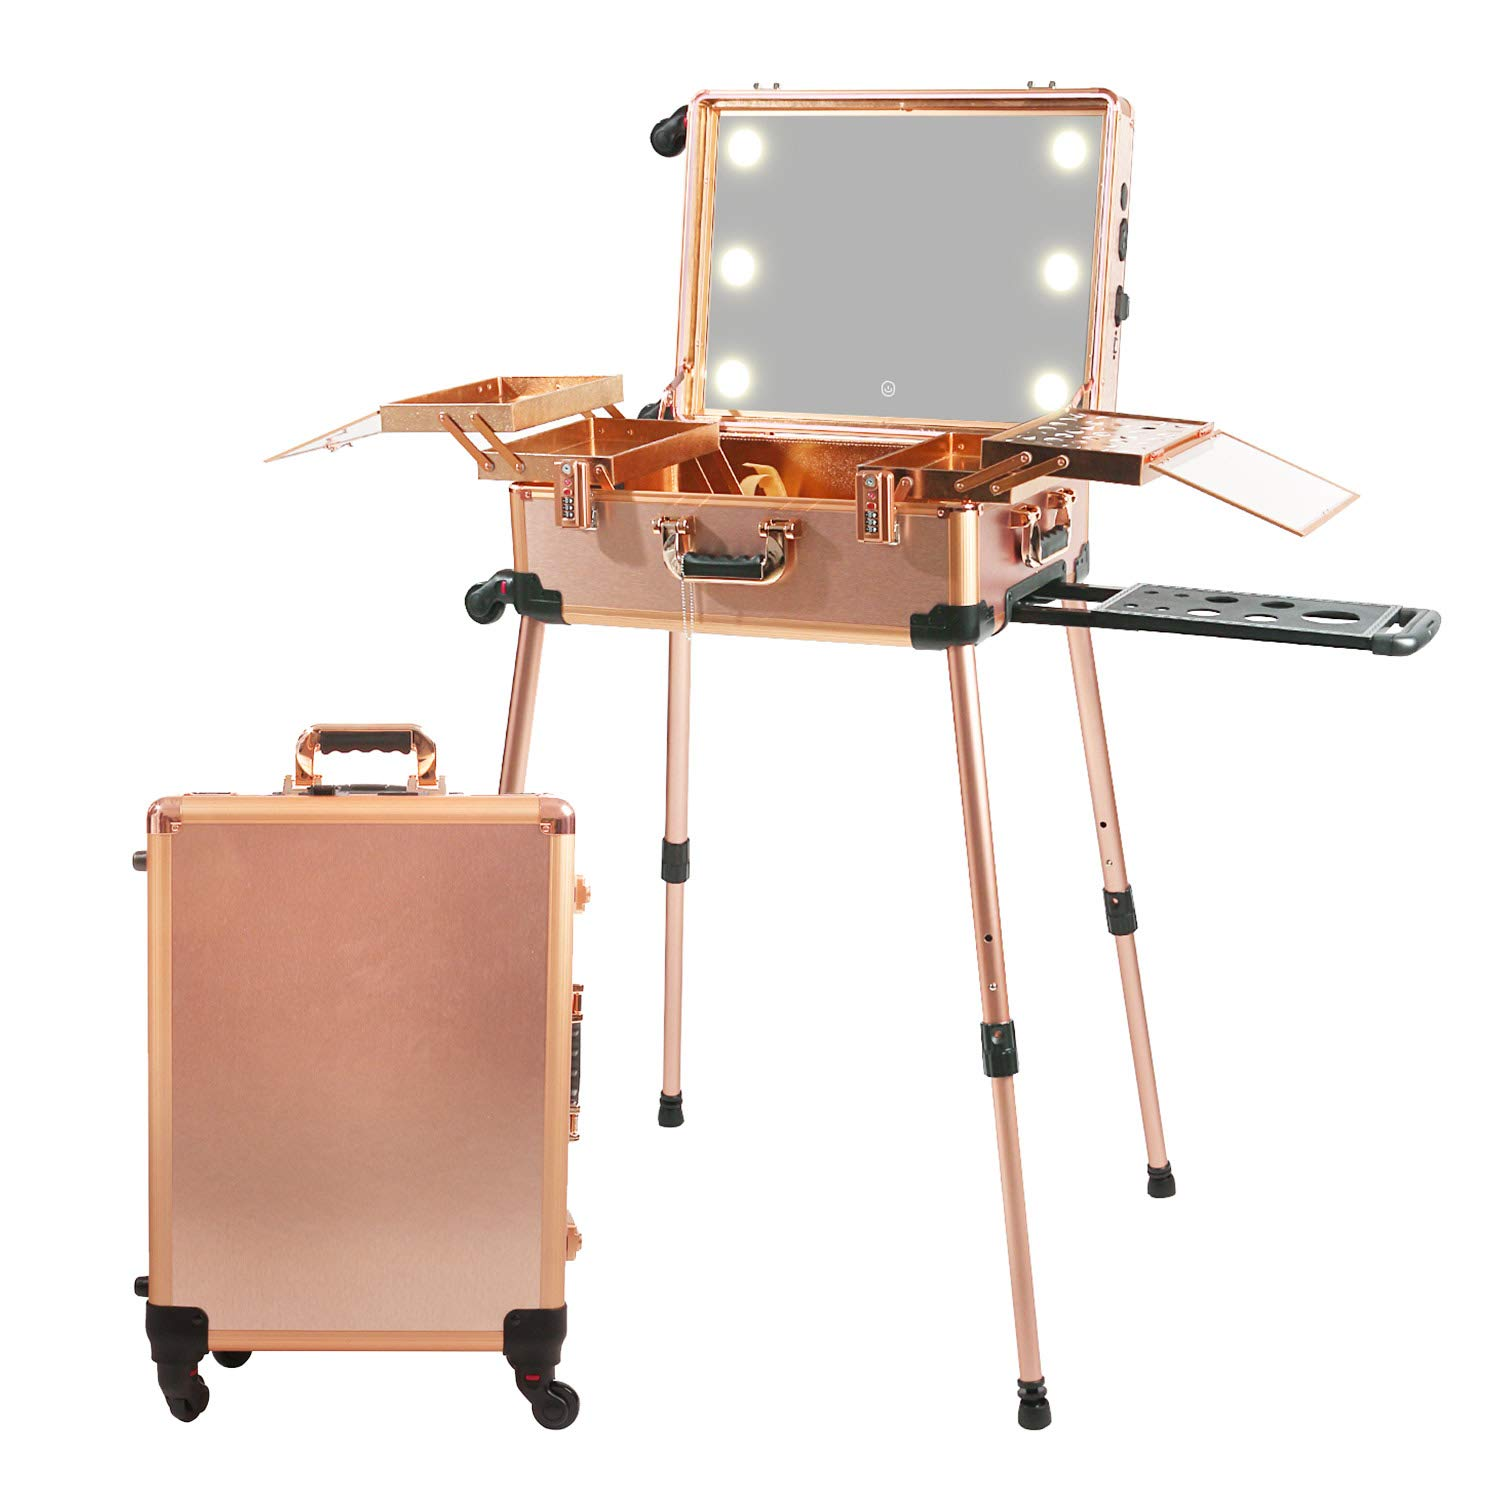 Jula Vance Large Makeup Train Case with Bluetooth Speaker & Code Lock & Full Screen Lighted Mirror & 3 Light Colors Lighted Rolling Cosmetic Organizer, Professional Artist Trolley Studio Free Standing